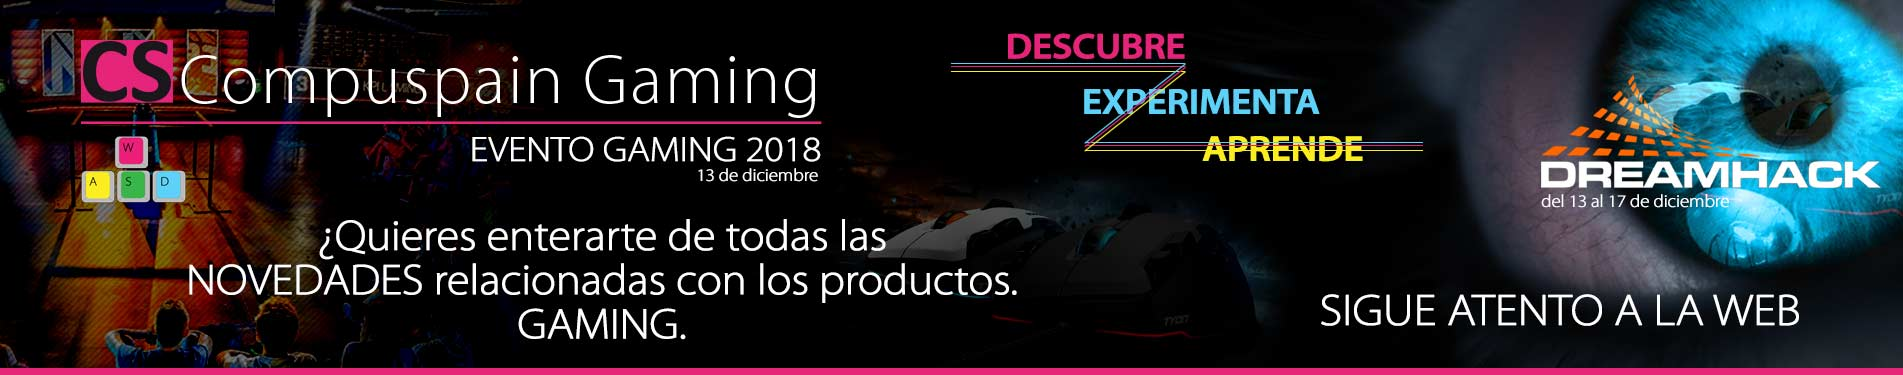 Evento Compuspain Gaming